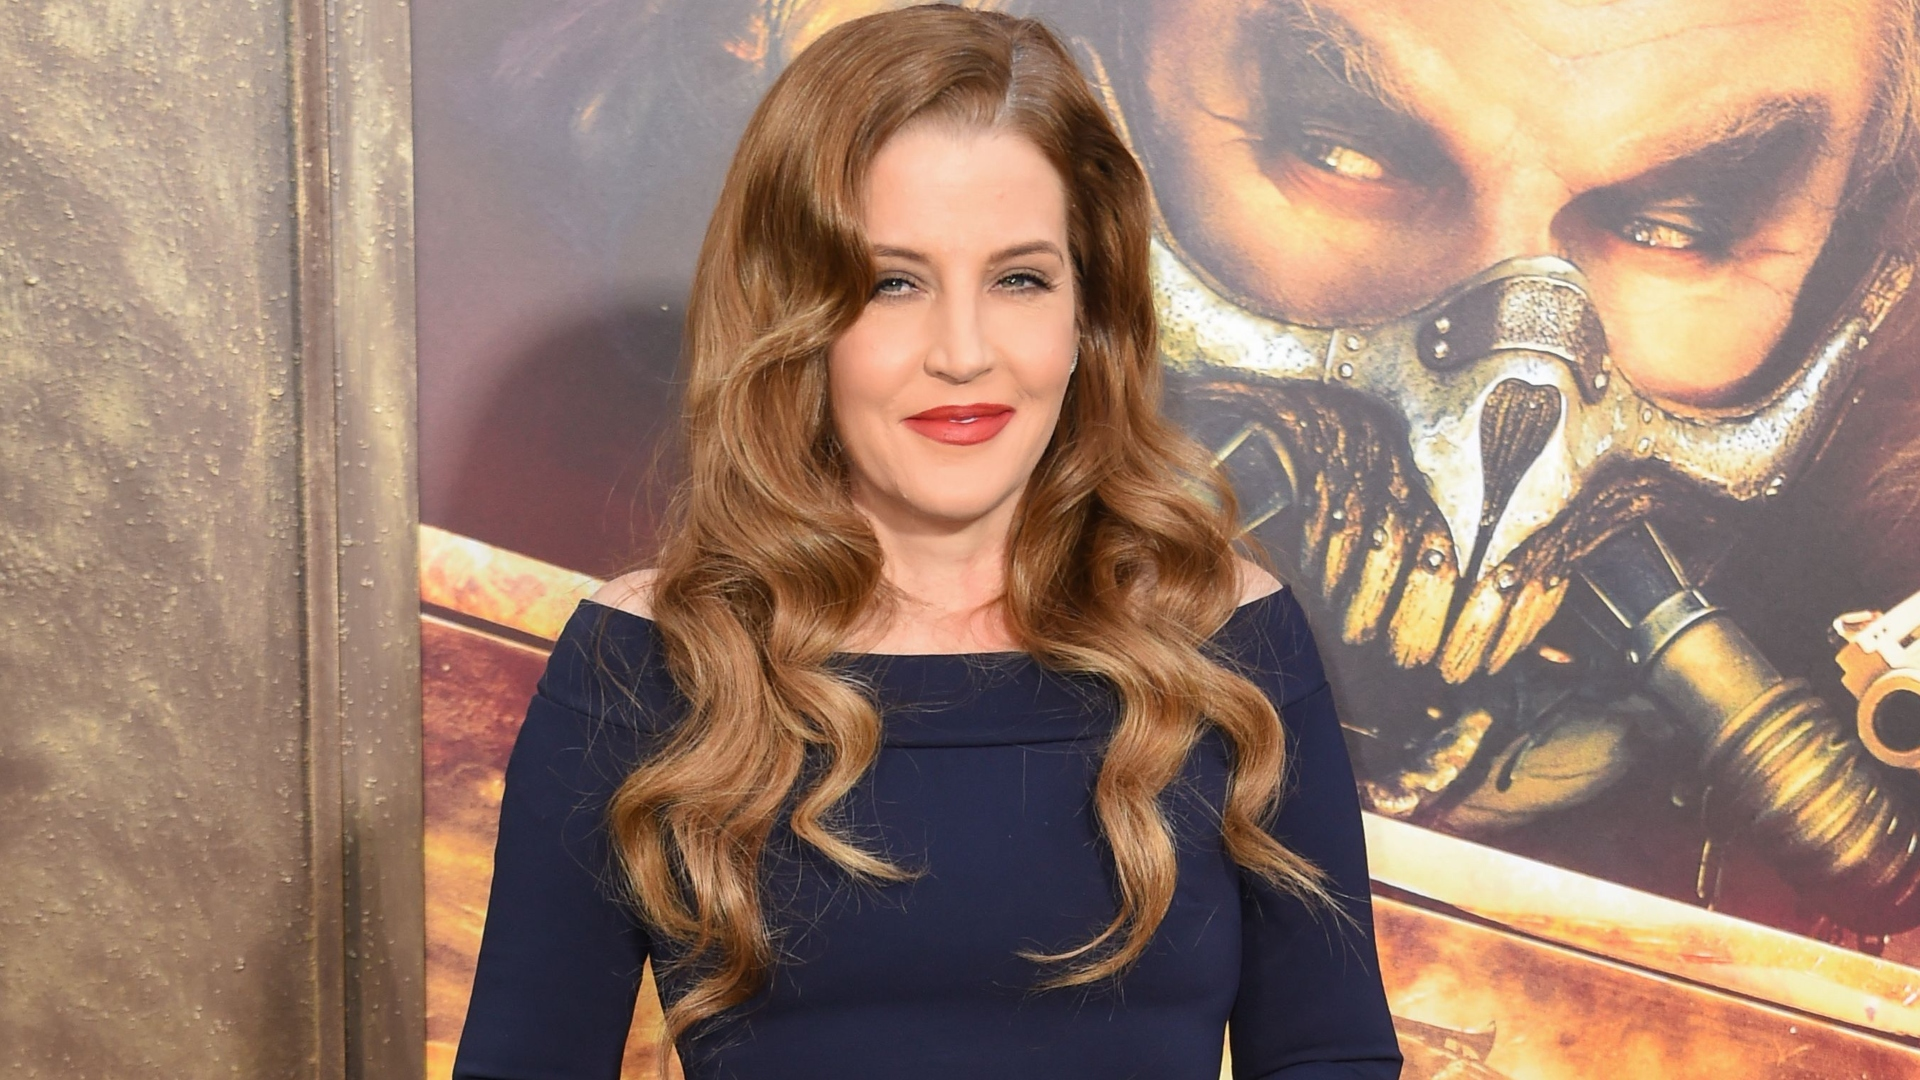 Lisa Marie Presley S Son Benjamin Keough Is Dead At Age 27 Sheknows